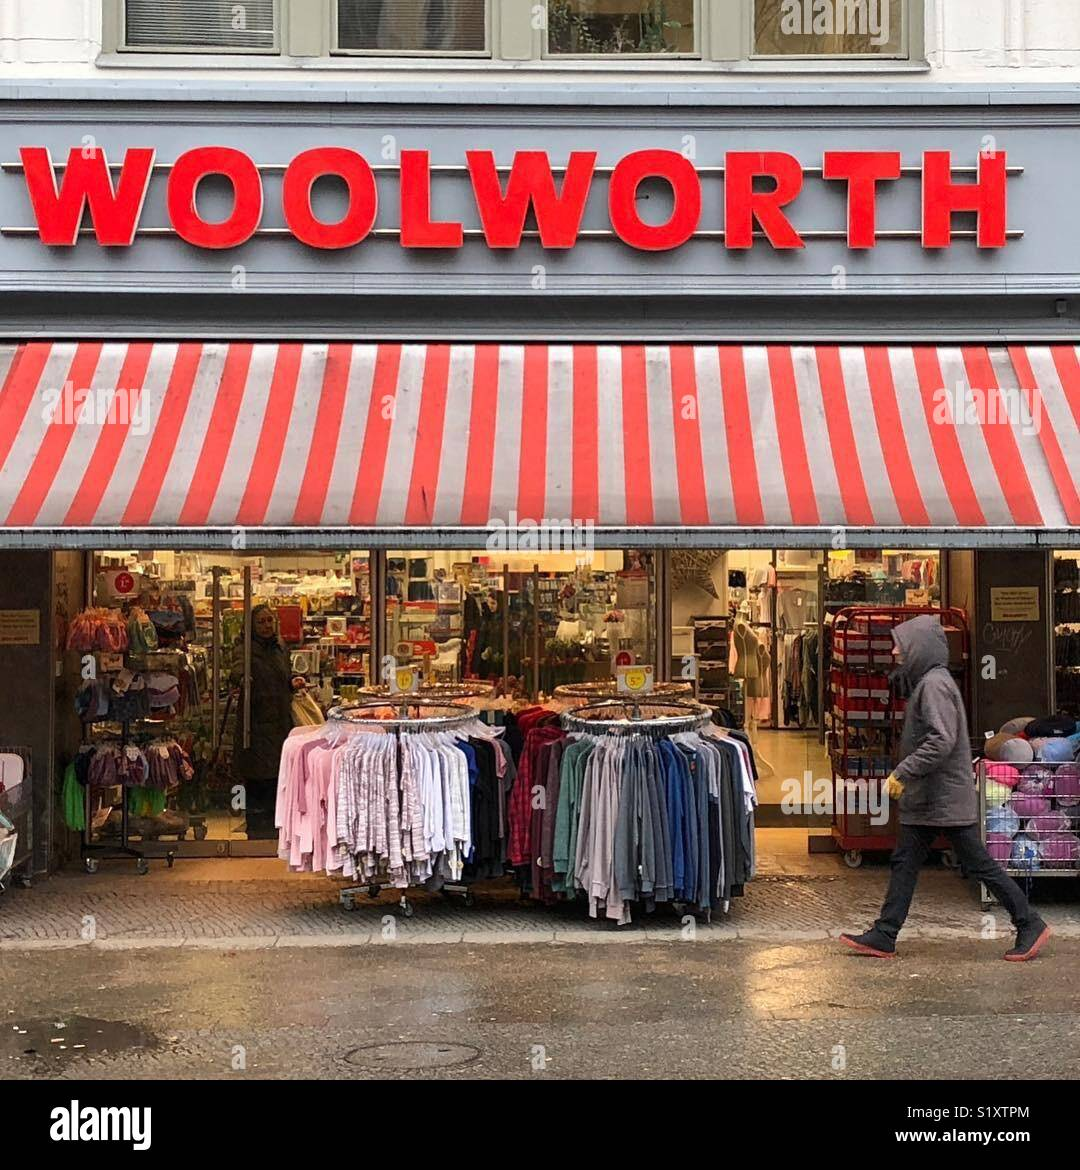 Un magasin Woolworth à Berlin, Allemagne. Photo Stock